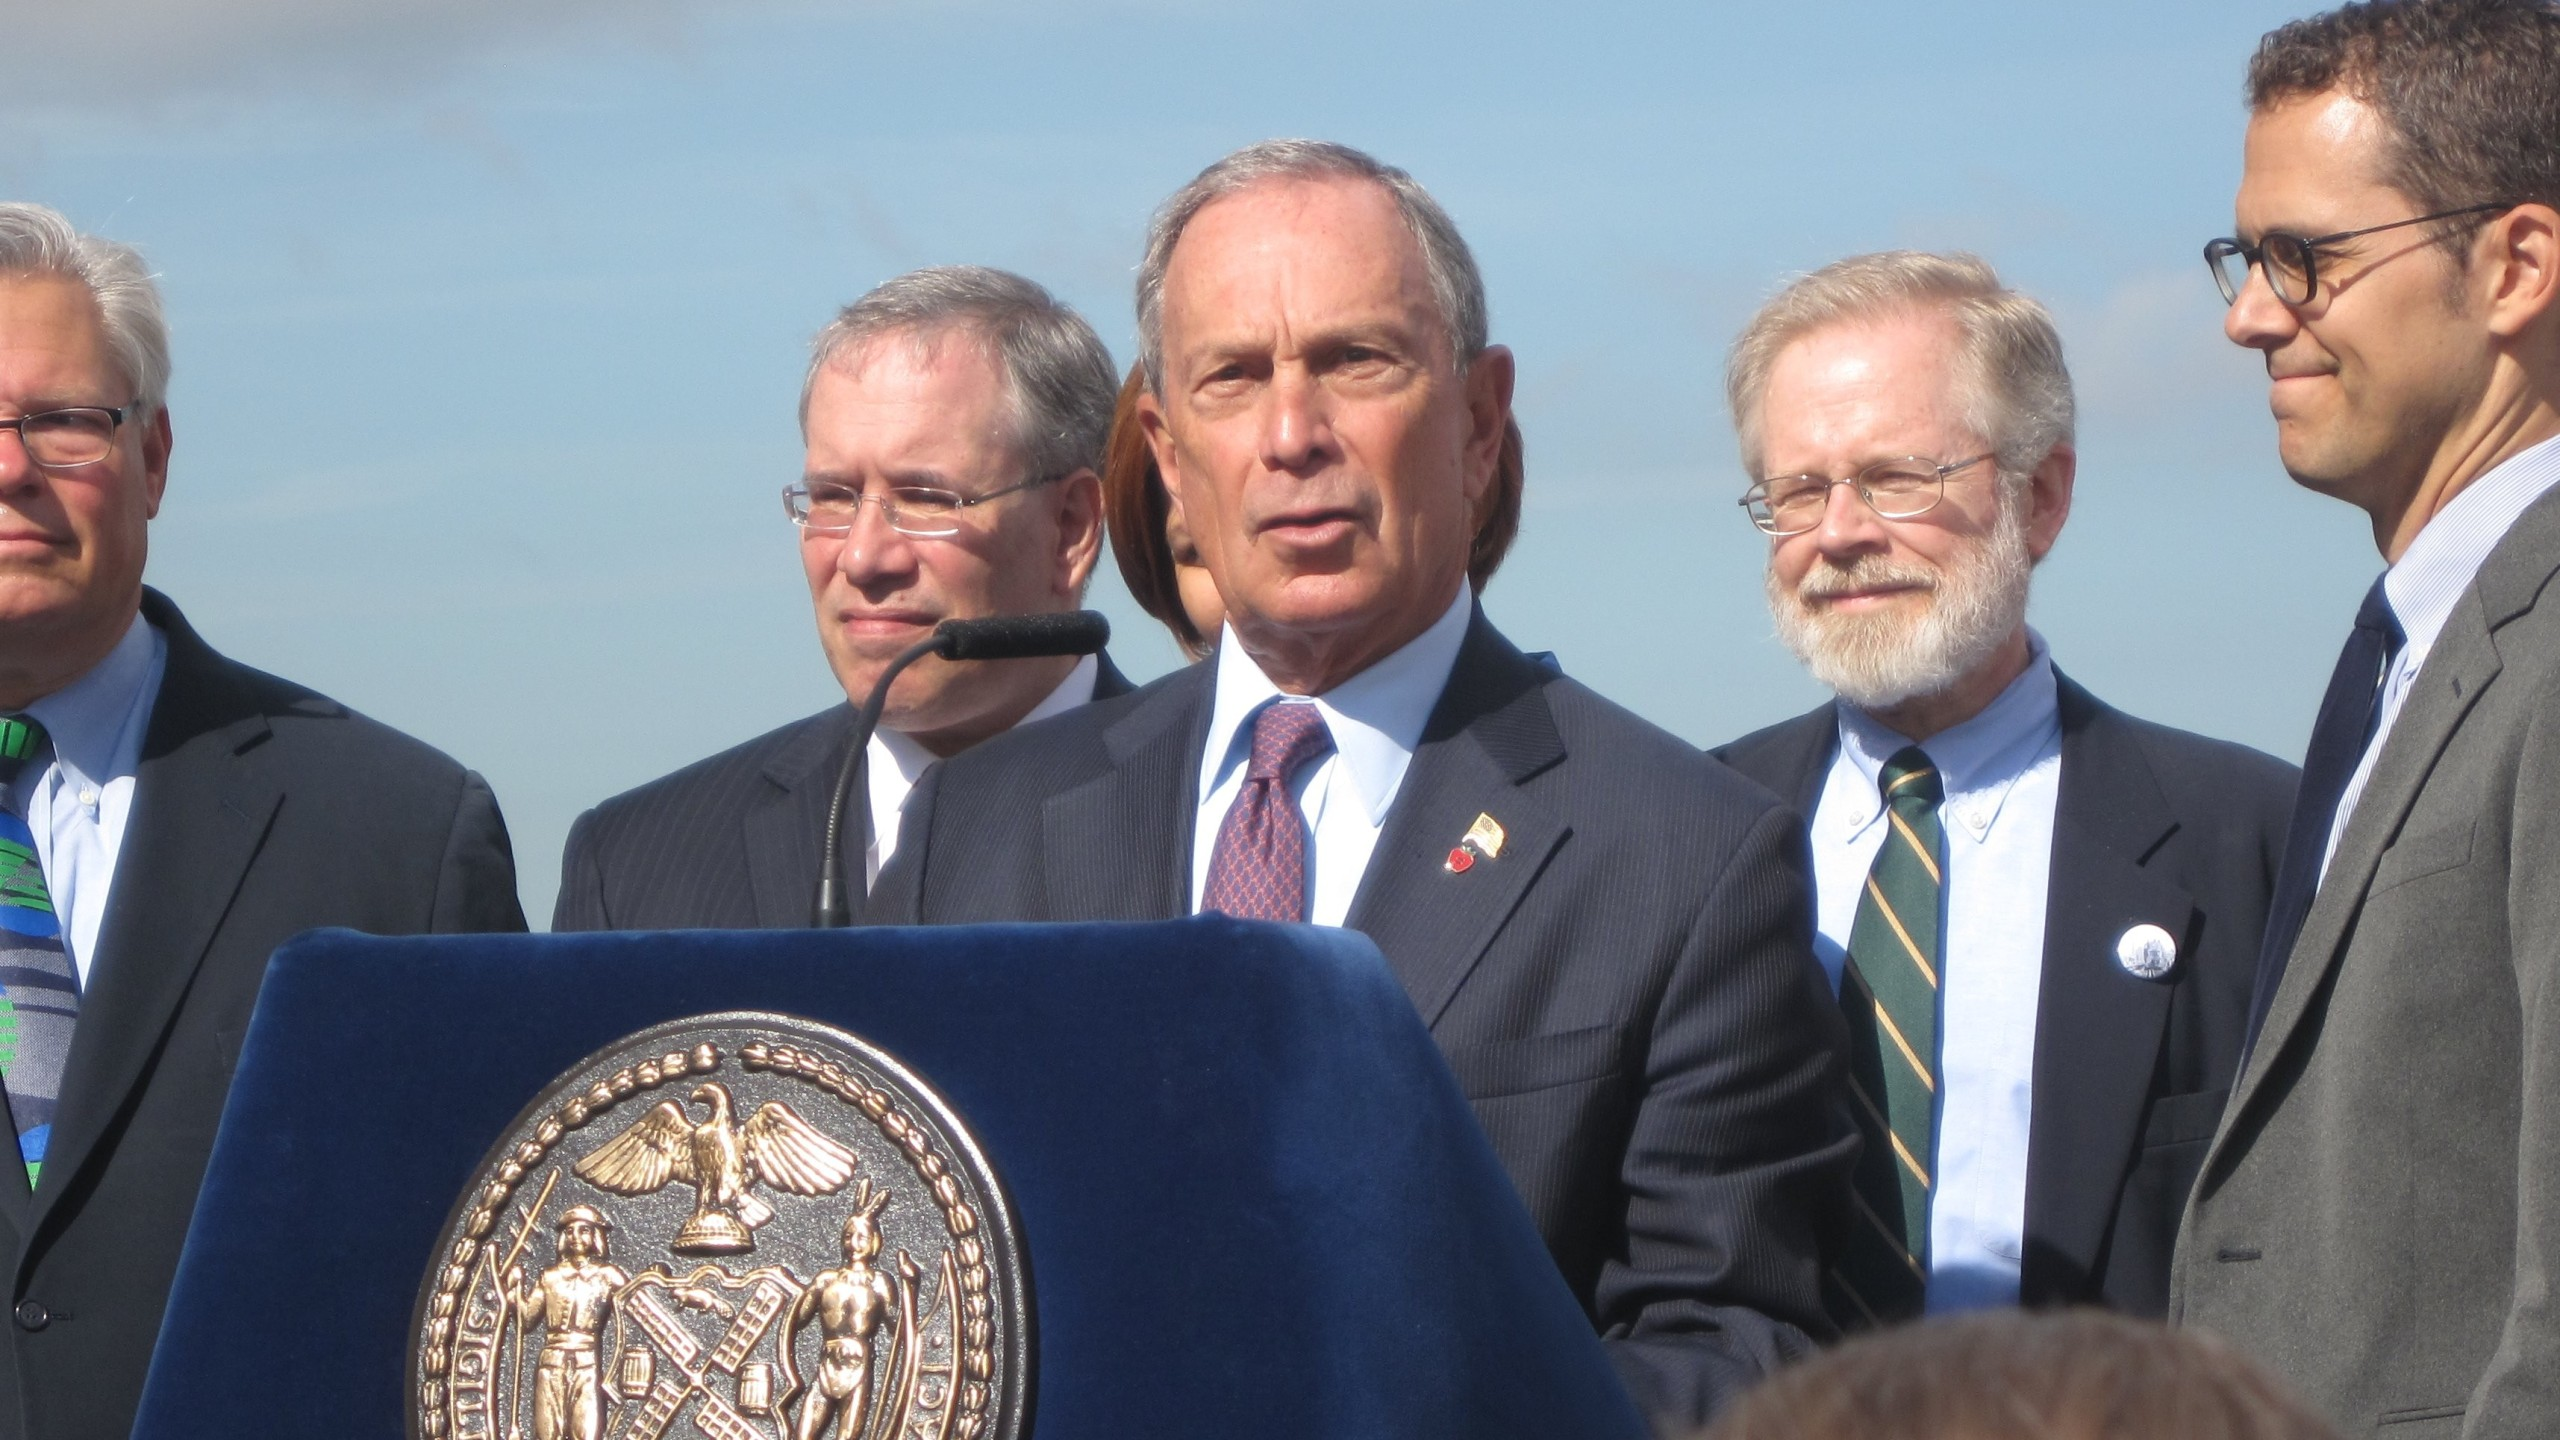 New York Mayor Michael Bloomberg speaks at a groundbreaking ceremony in 2012. (Credit: CNN)